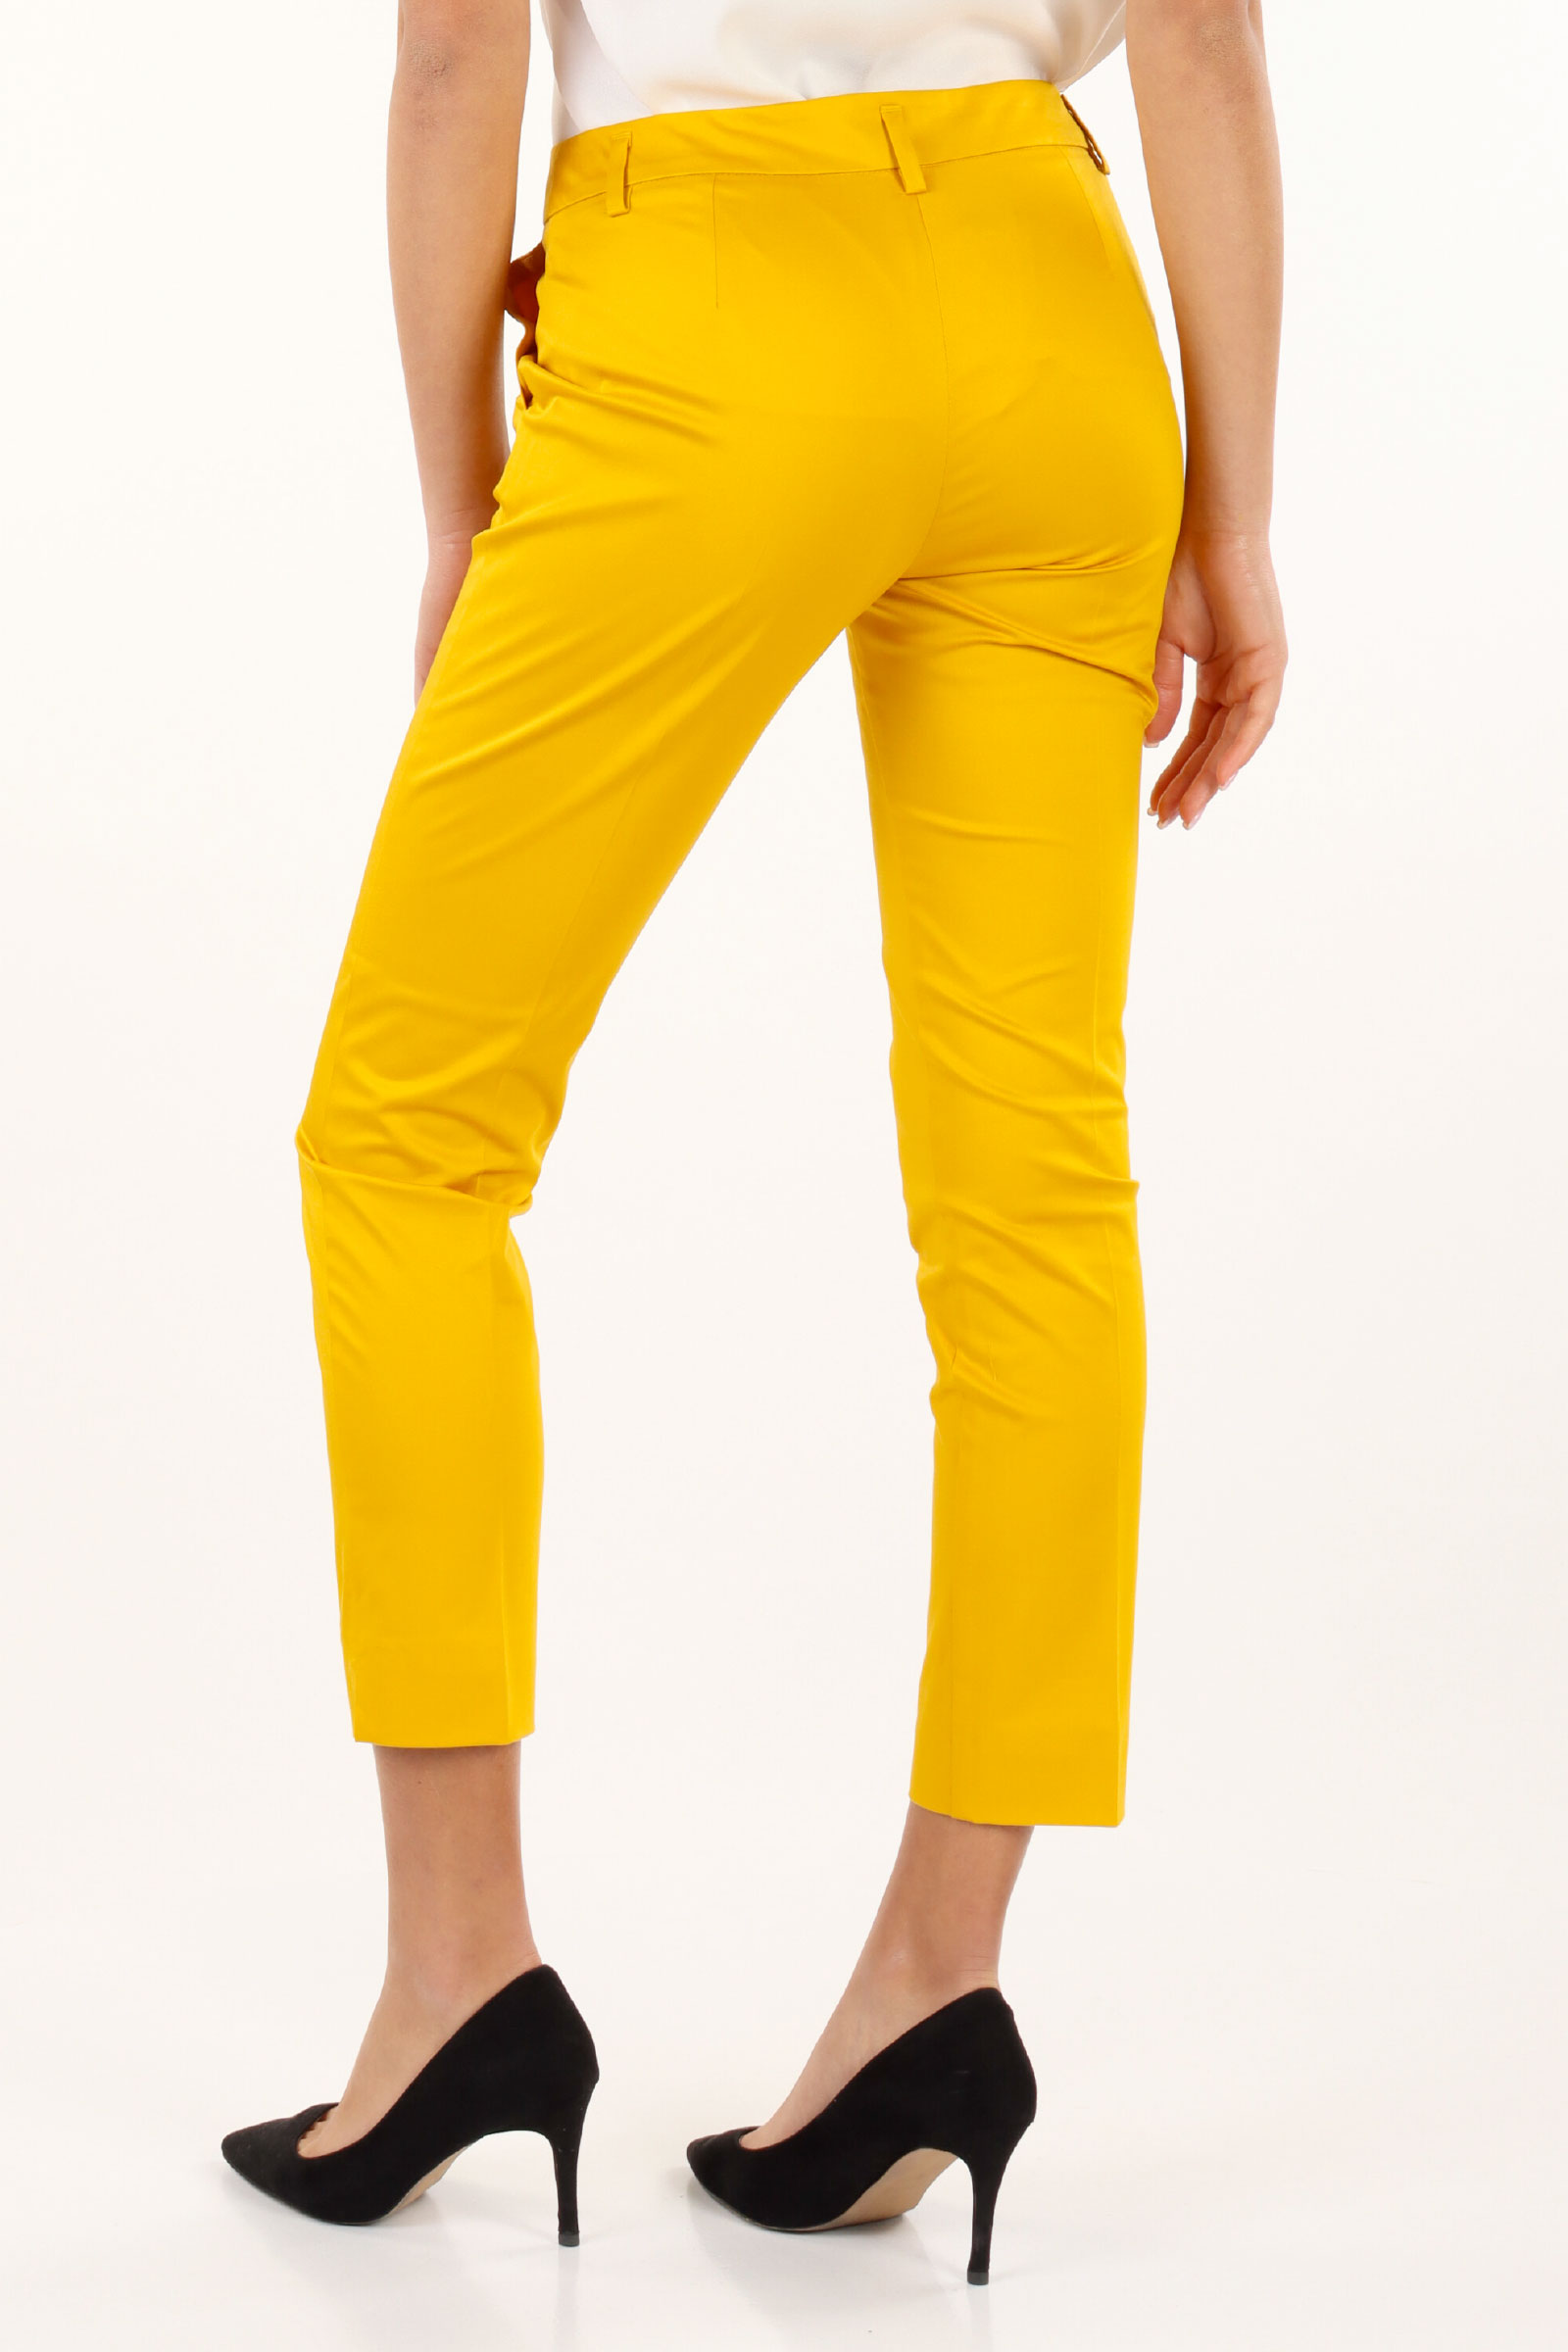 EMME MARELLA | Trousers | 51310414000002